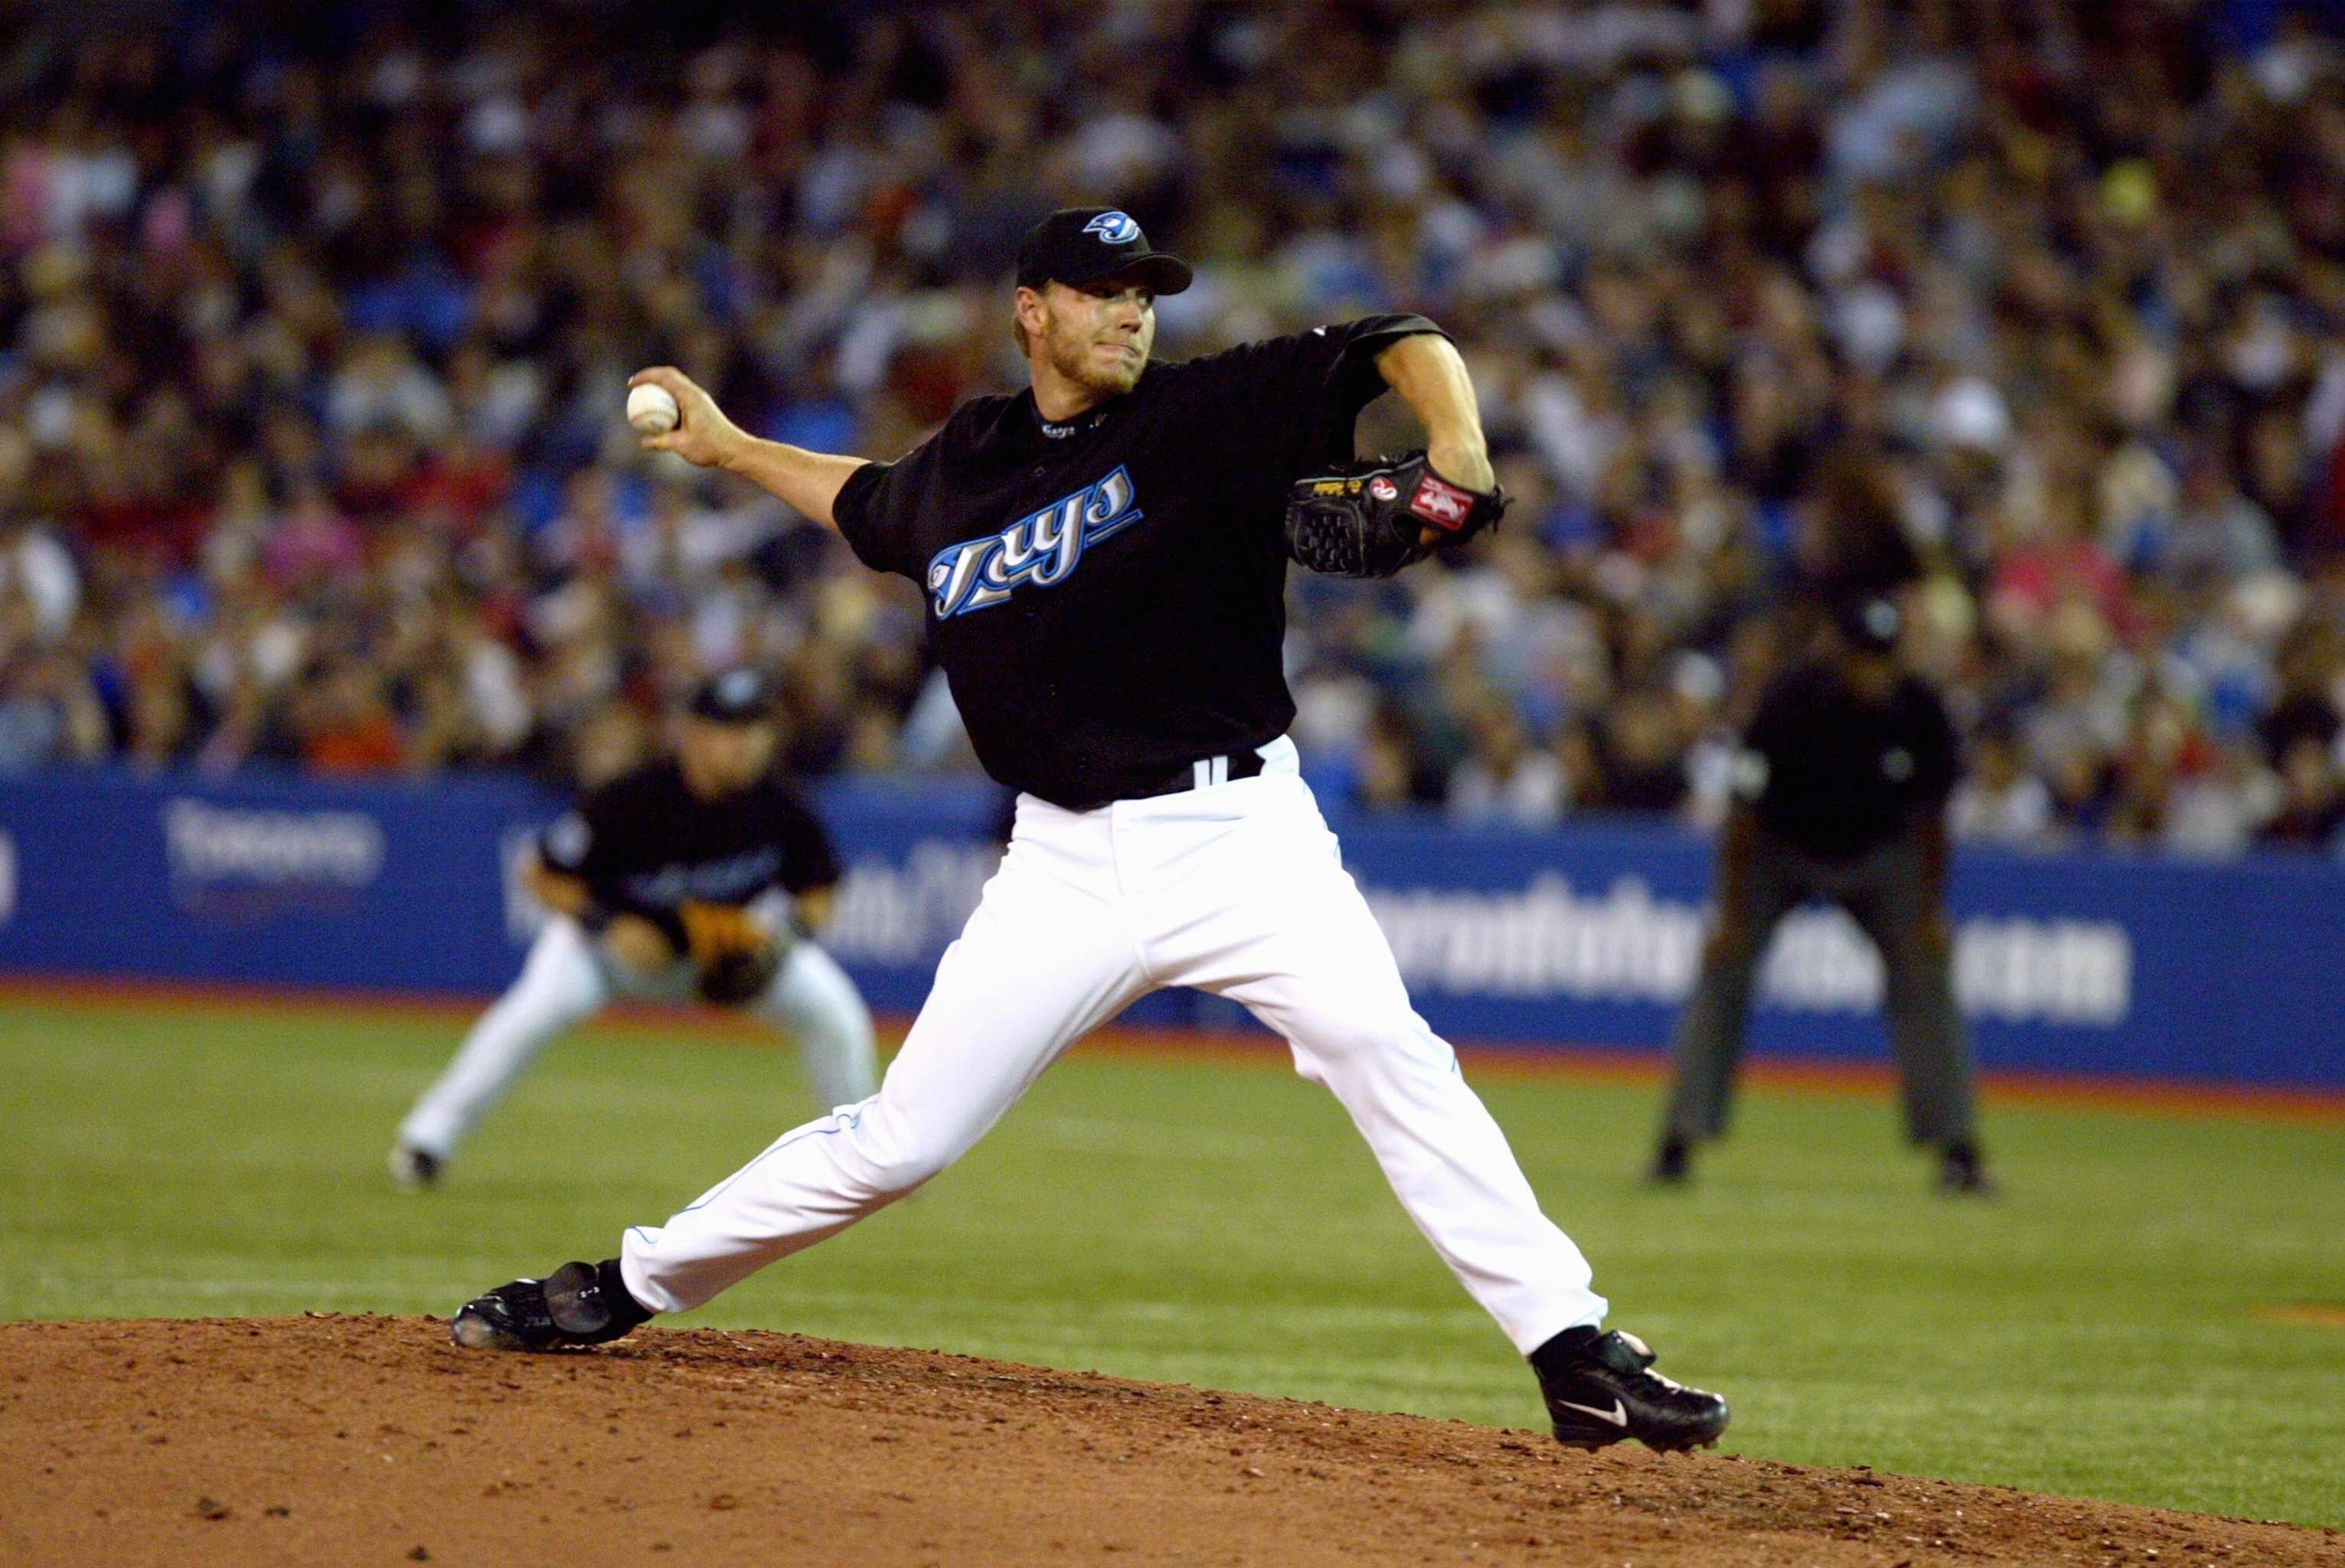 Roy Halladay spun another gem against New York